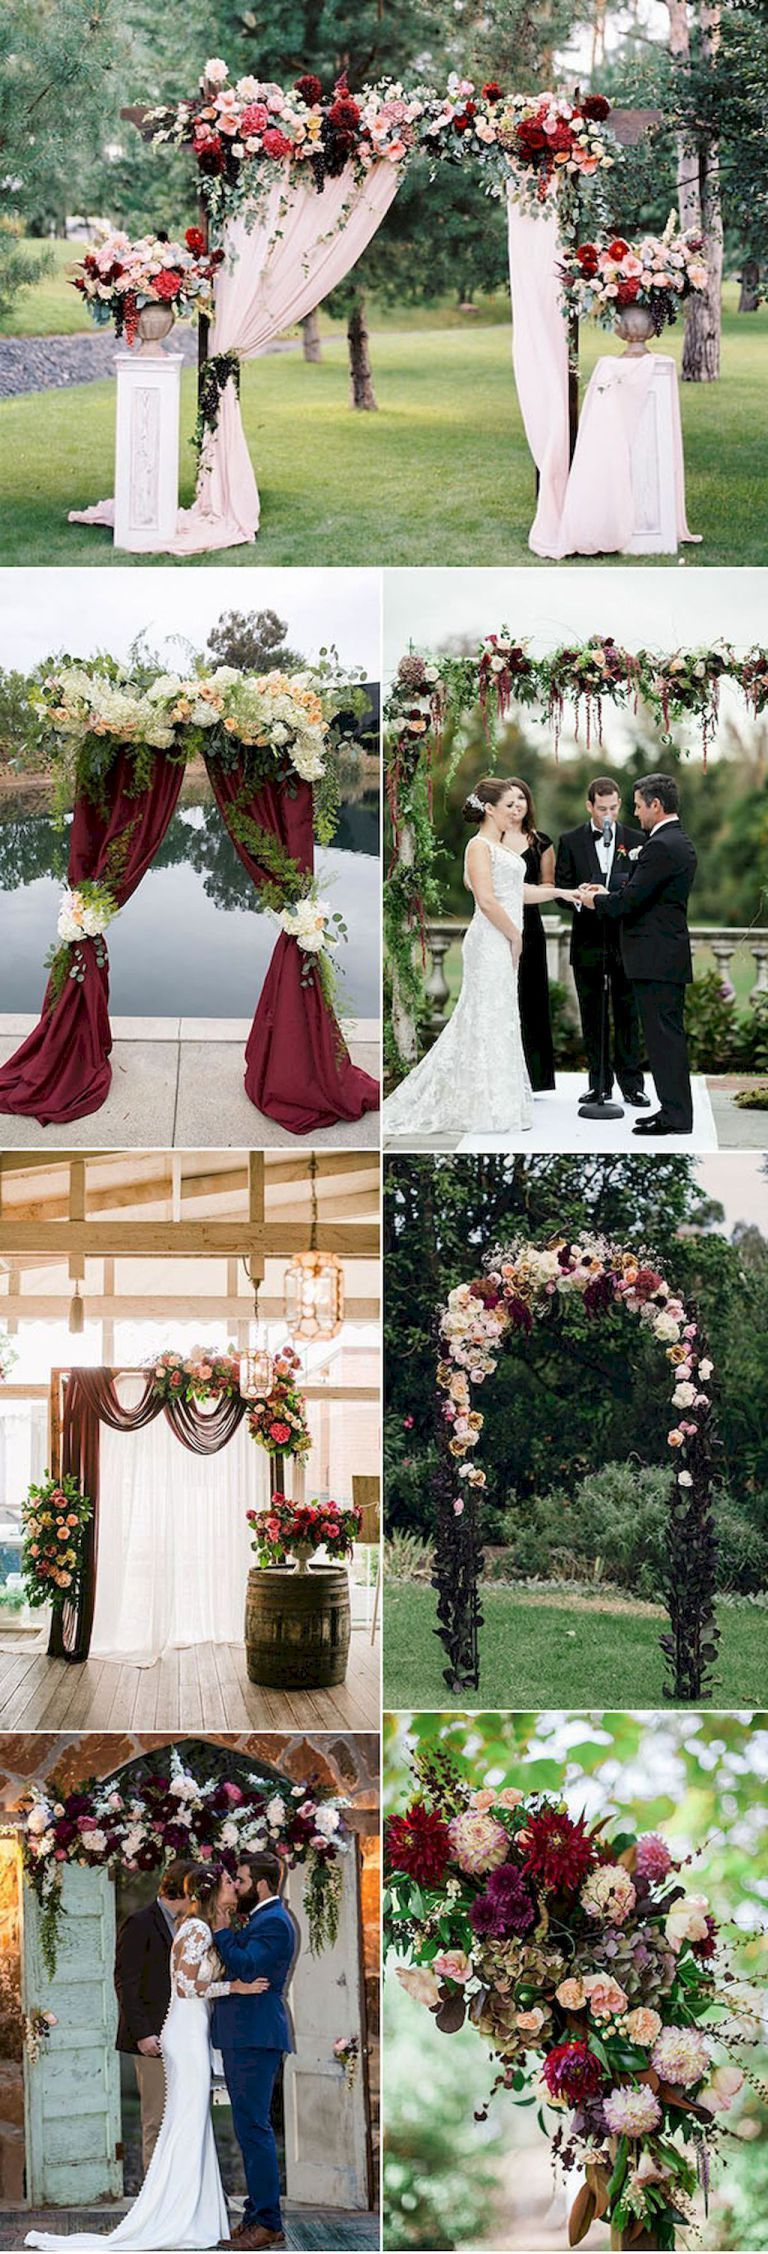 Mexican wedding decoration ideas  Inexpensive backyard wedding decor ideas   Going to the Chapel